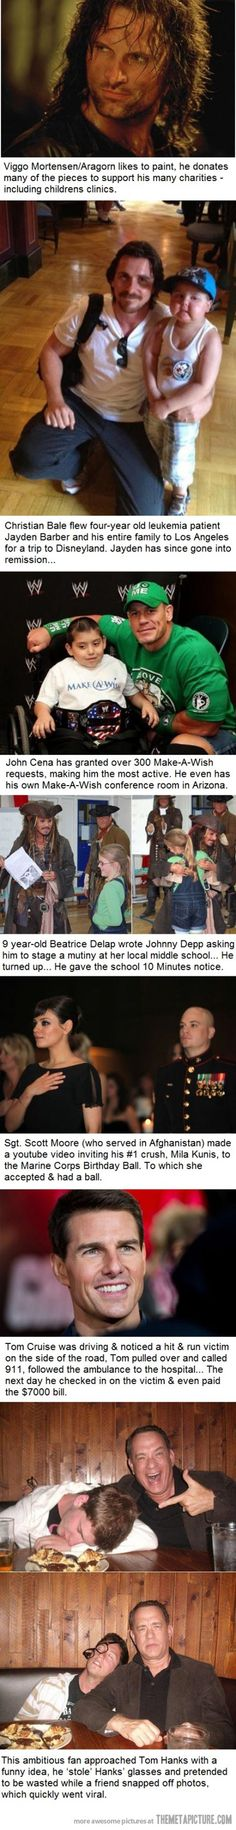 Good Guy Celebs